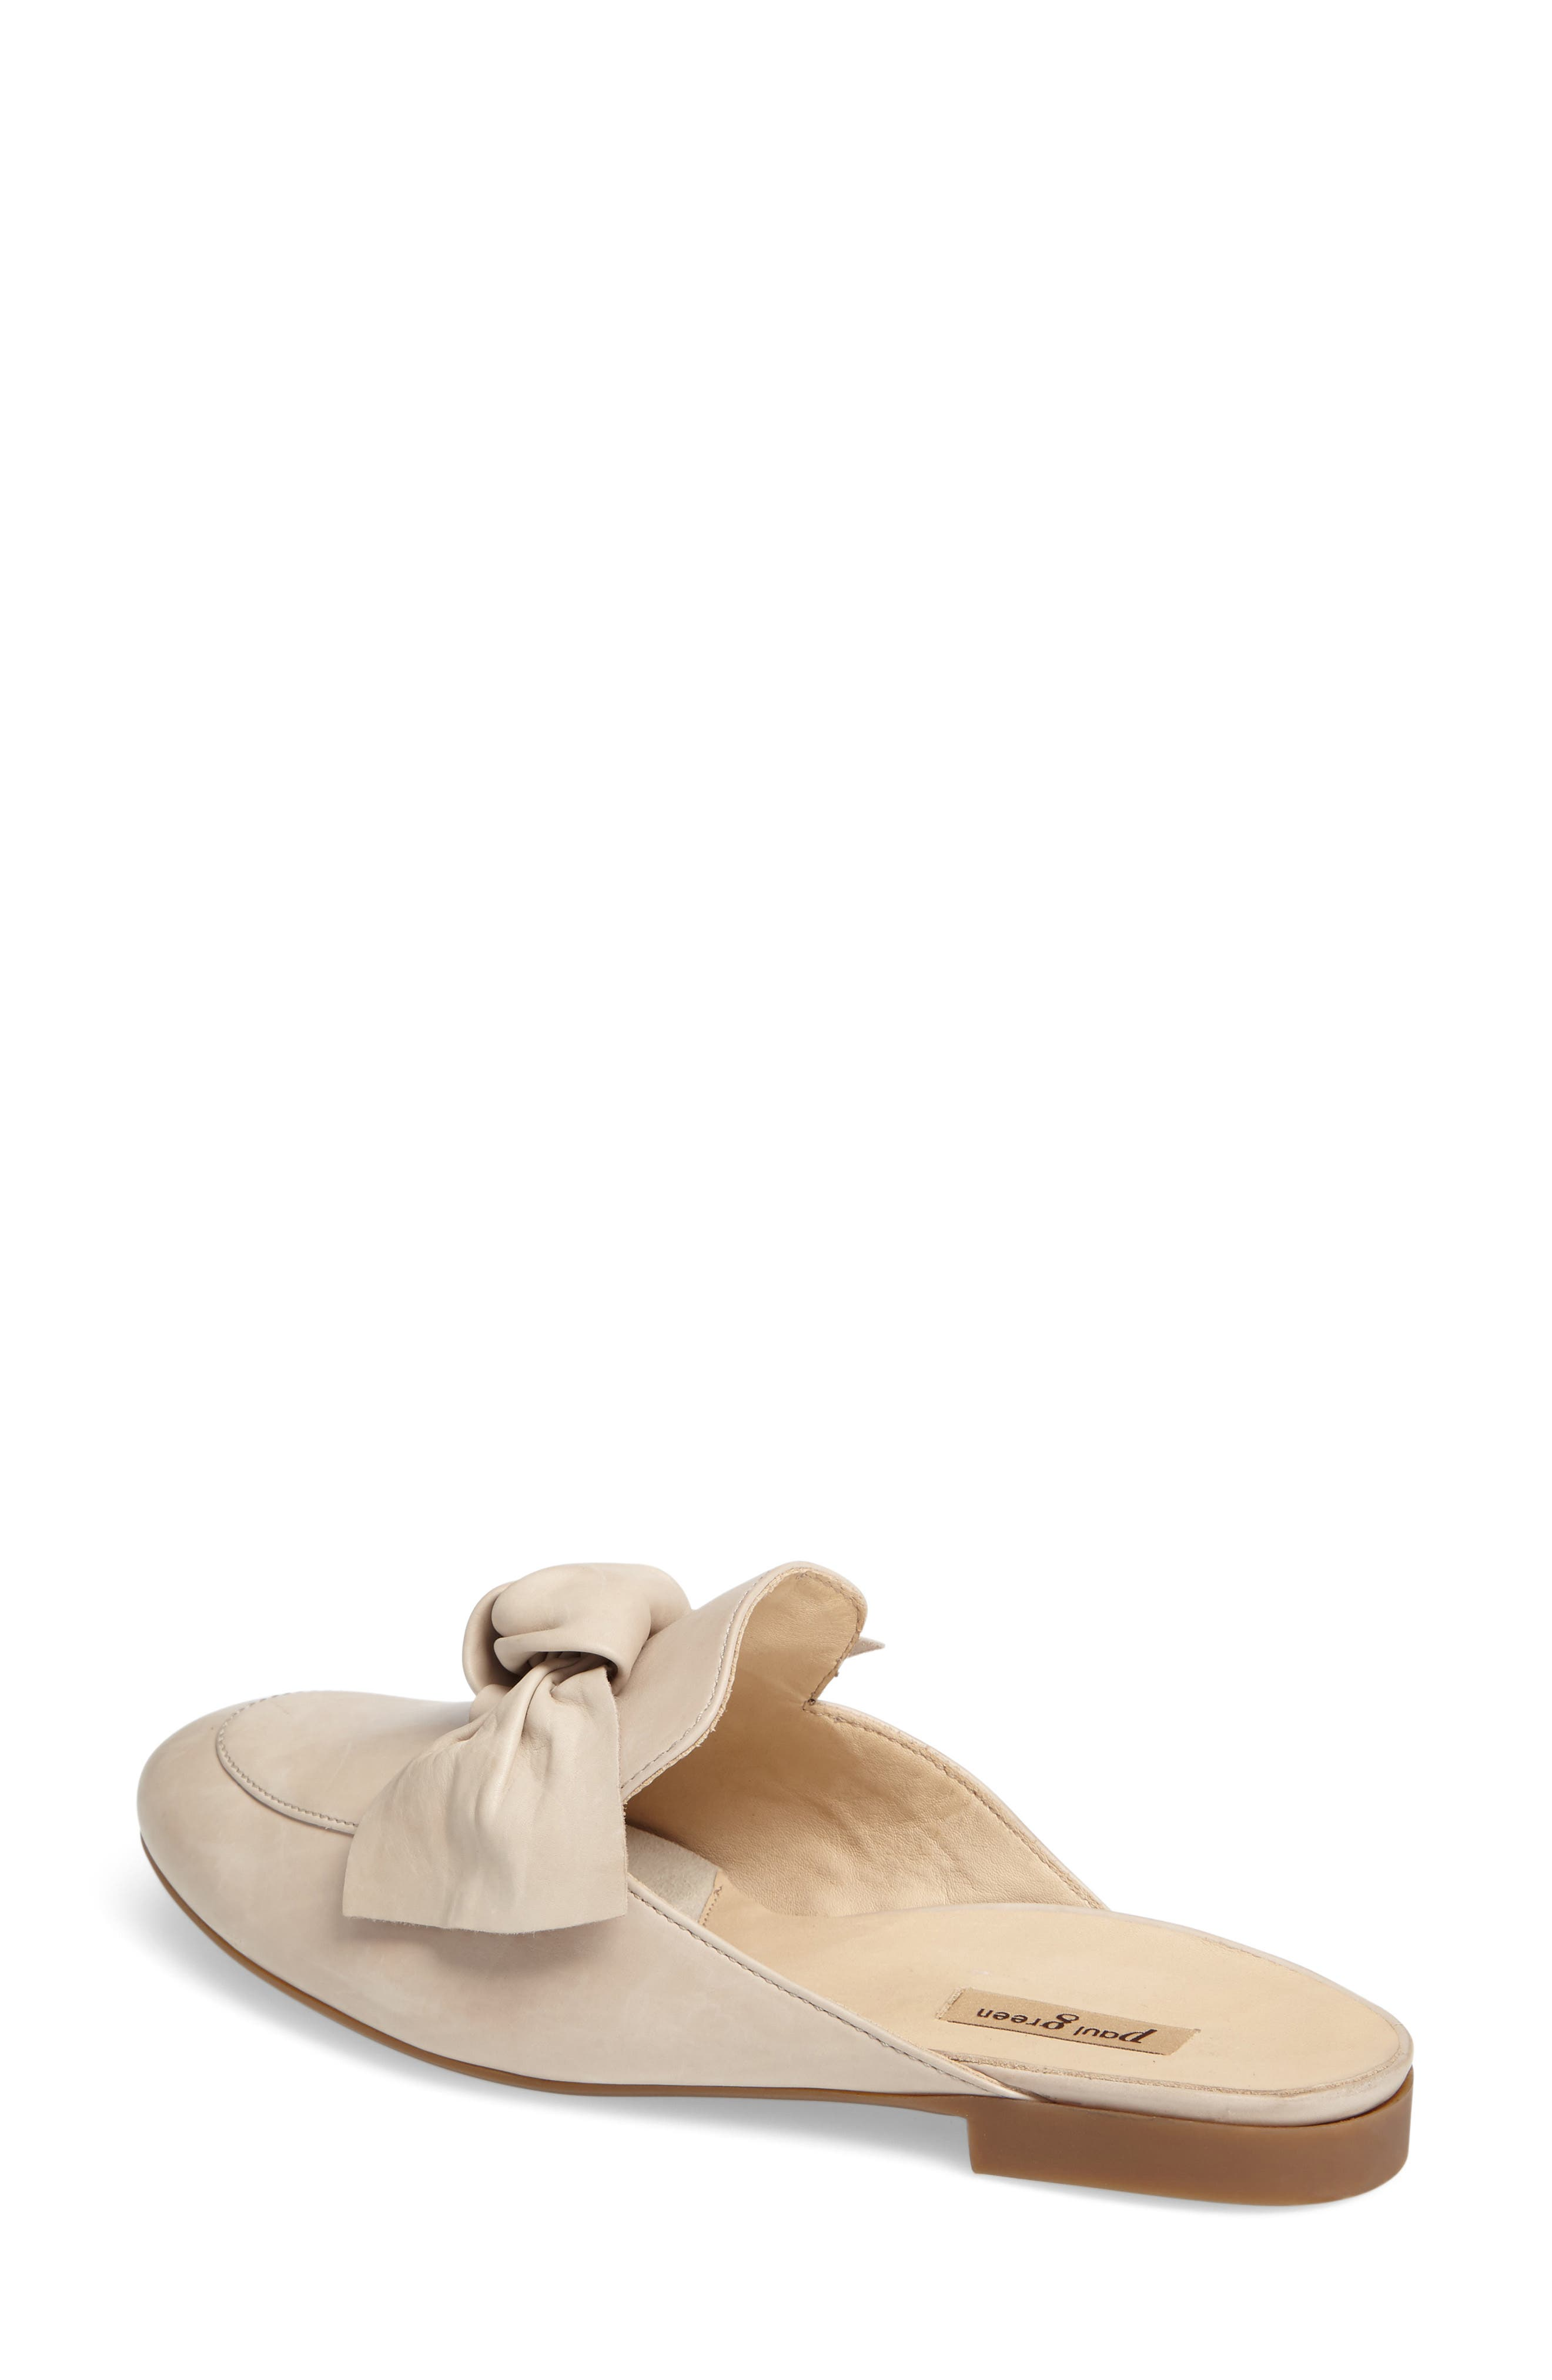 Mary Bow Mule Loafer,                             Alternate thumbnail 4, color,